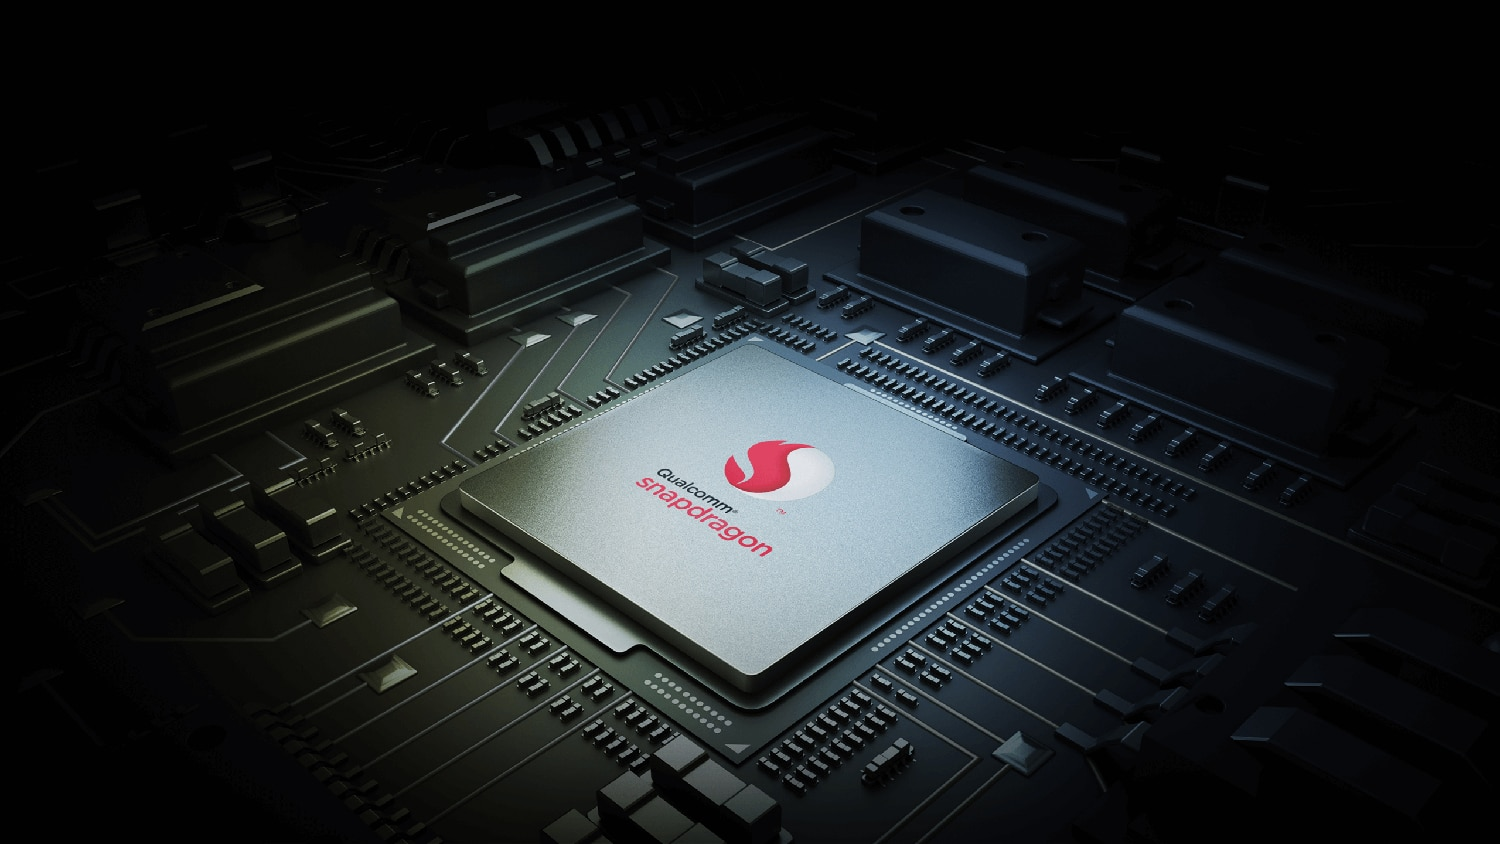 Qualcomm Snapdragon 898 to Pack ARM X2 Super Core Clocked at 3.09GHz: Leak